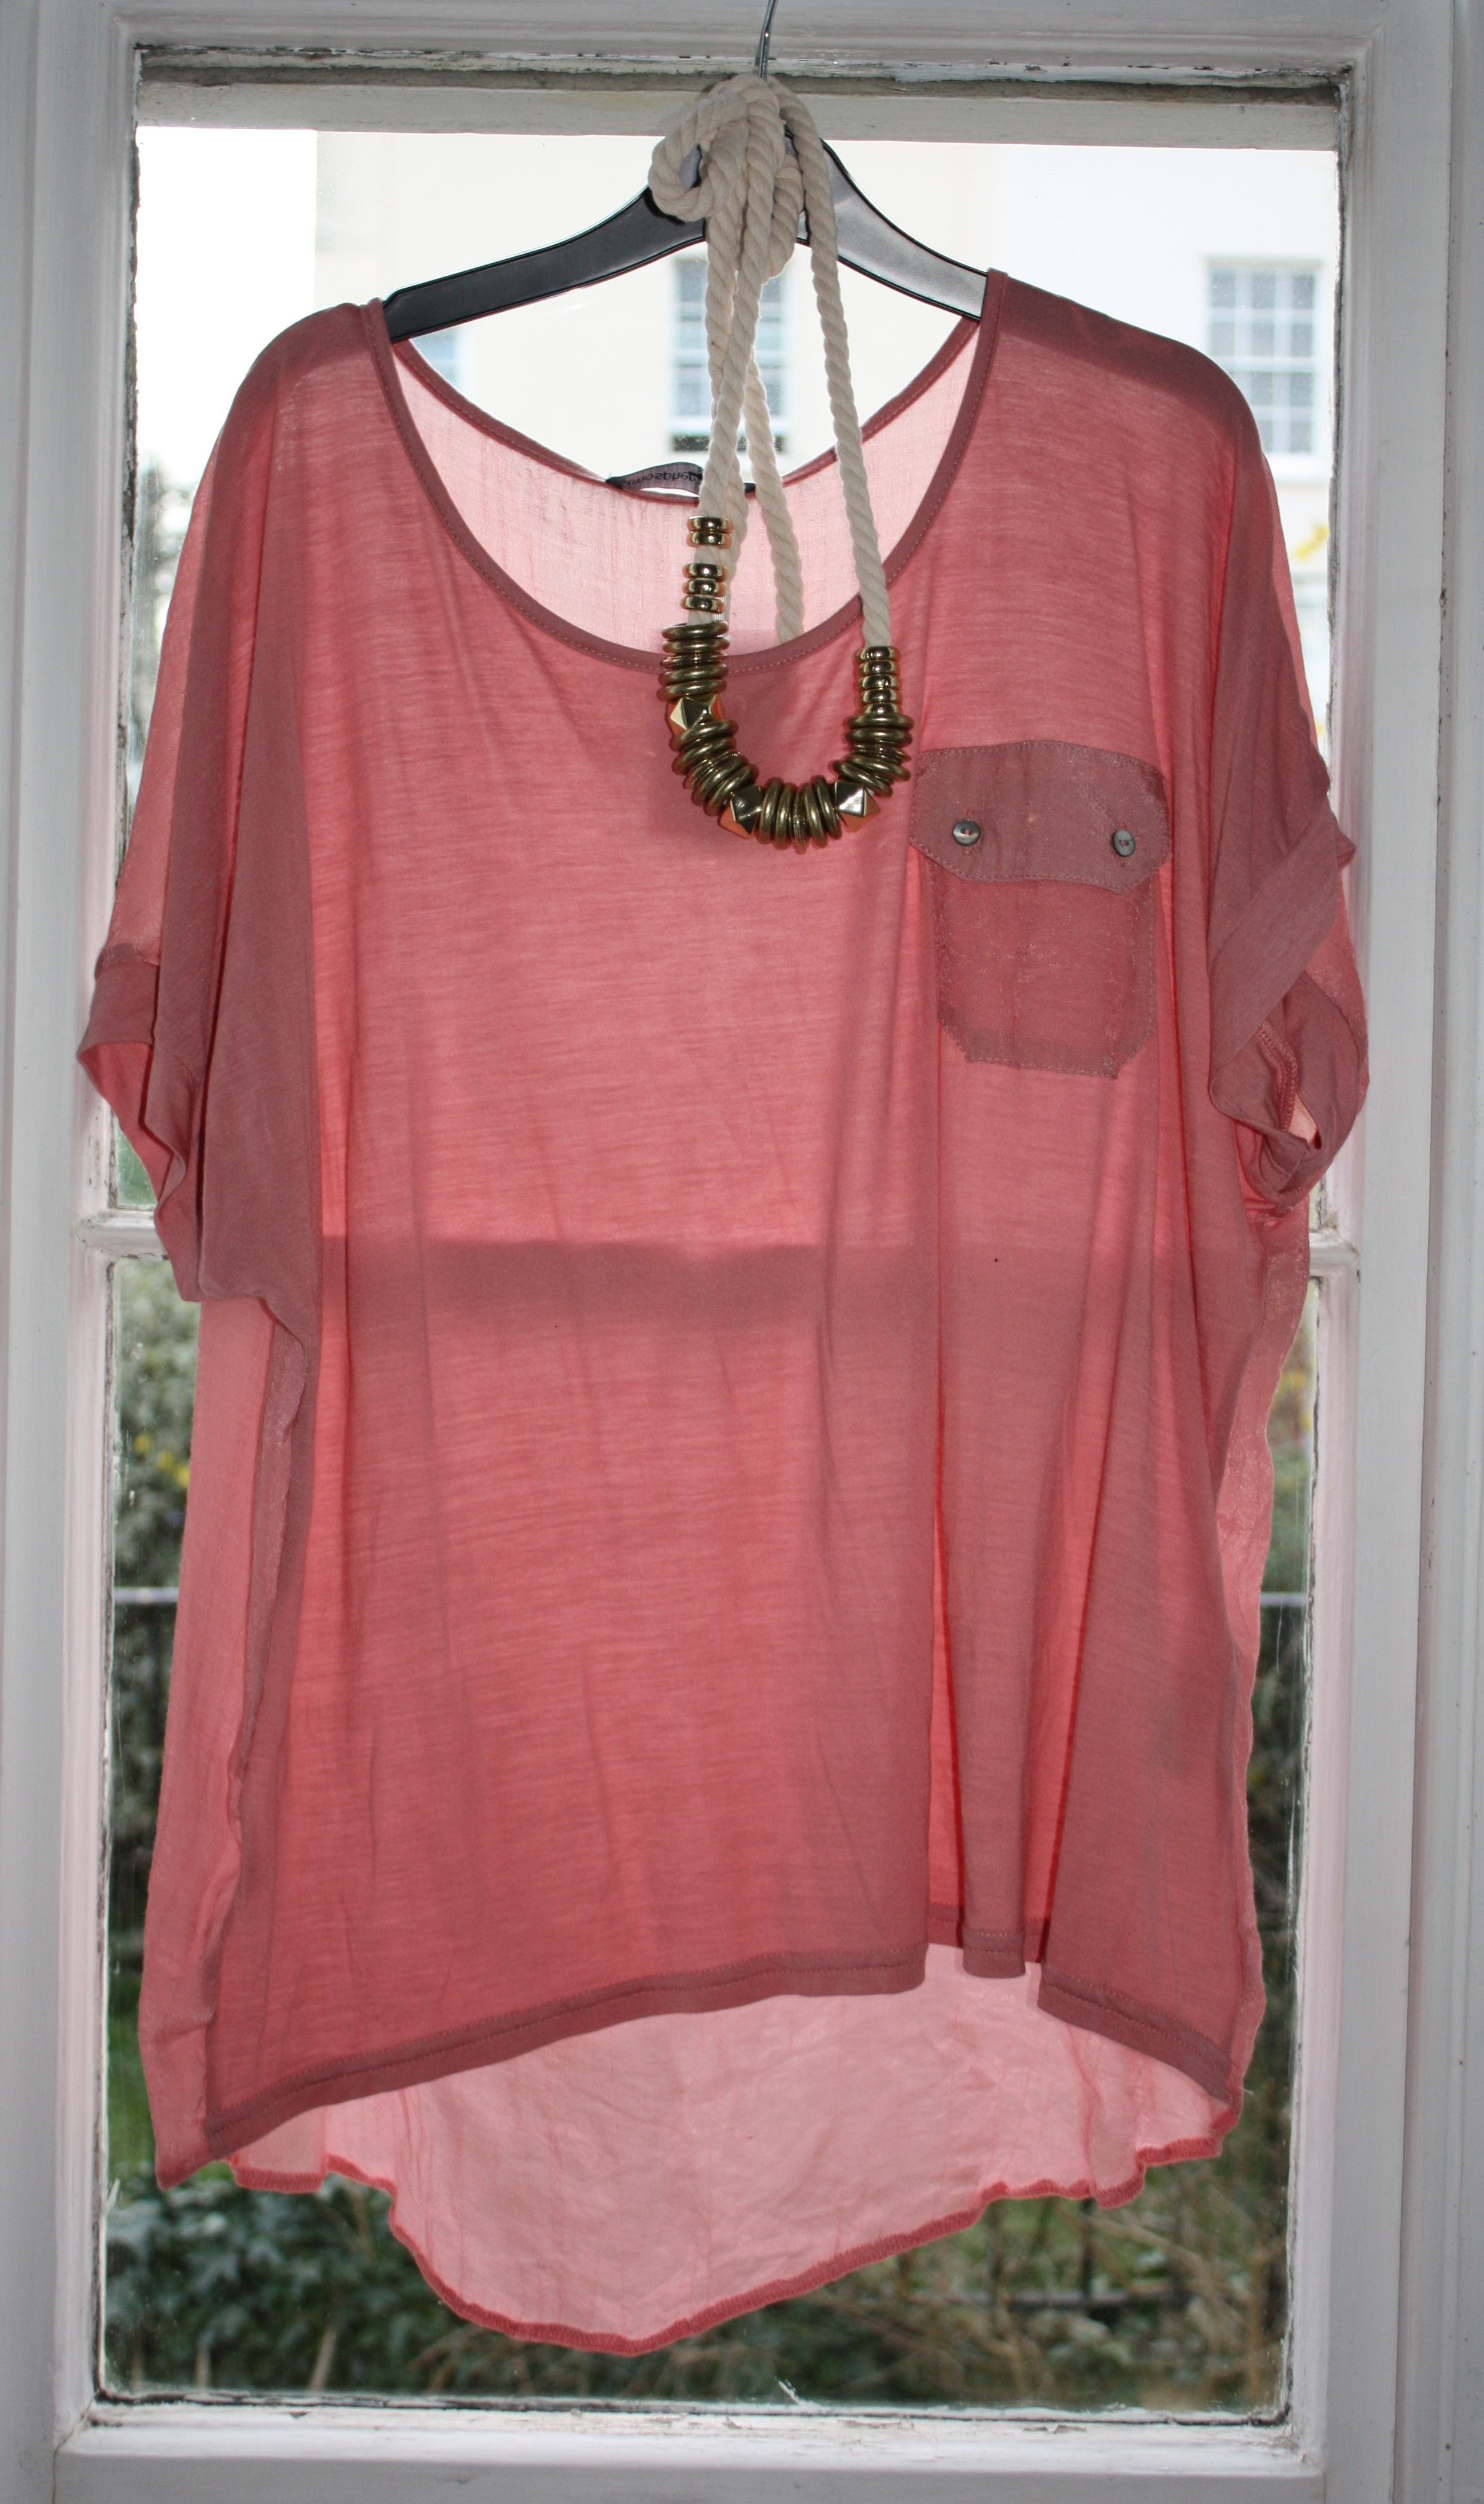 salmon pink jersey top